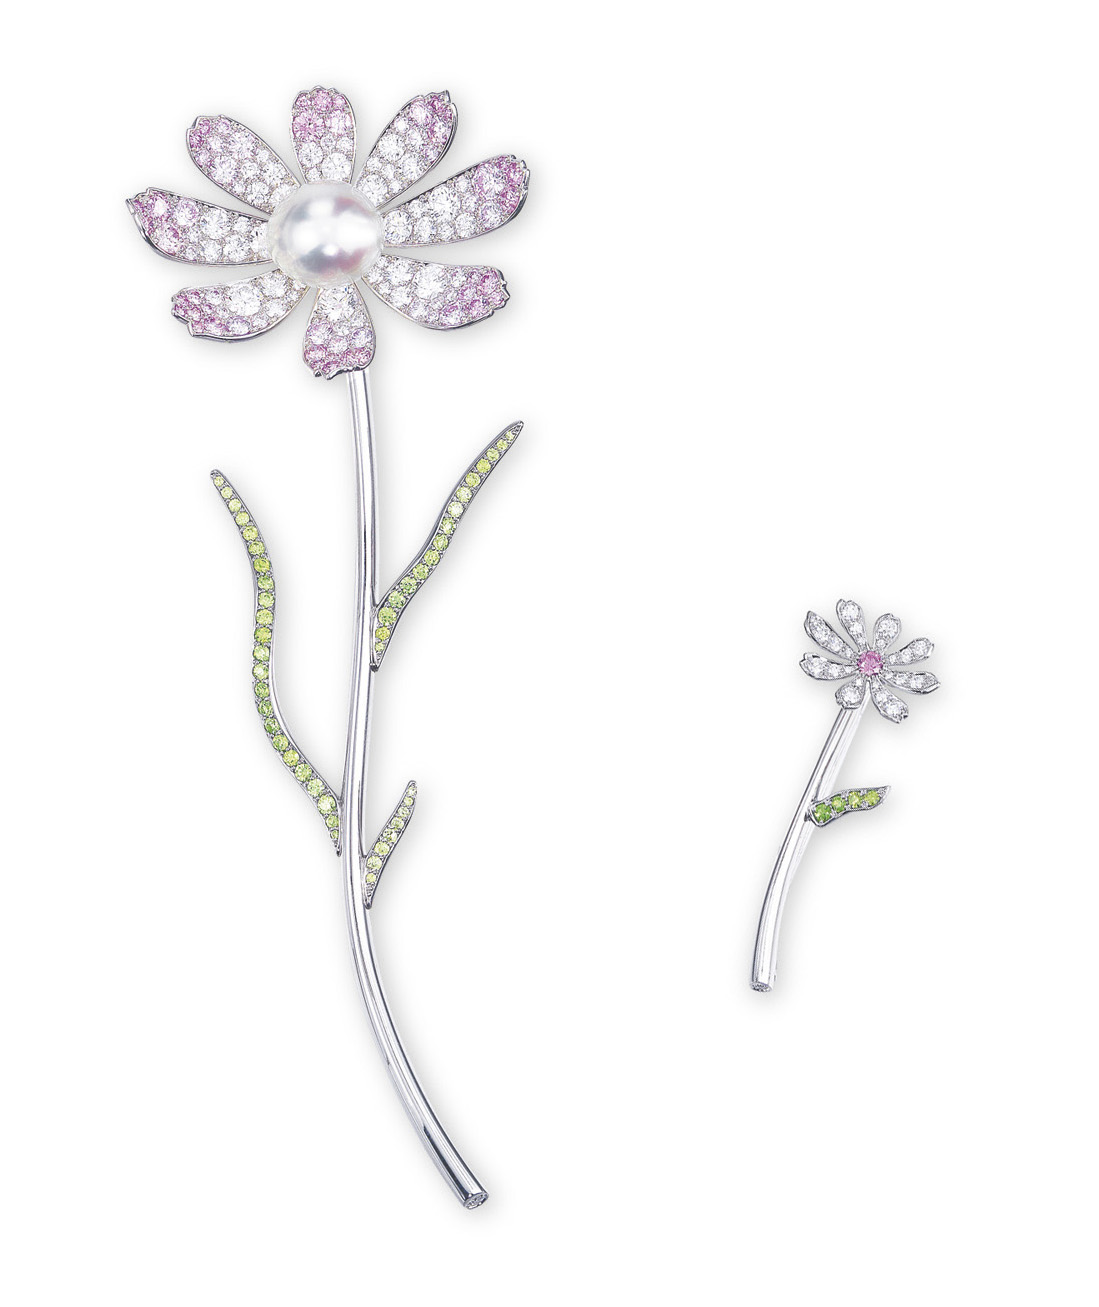 A PAIR OF MULTI-GEM BROOCHES, BY GIMEL